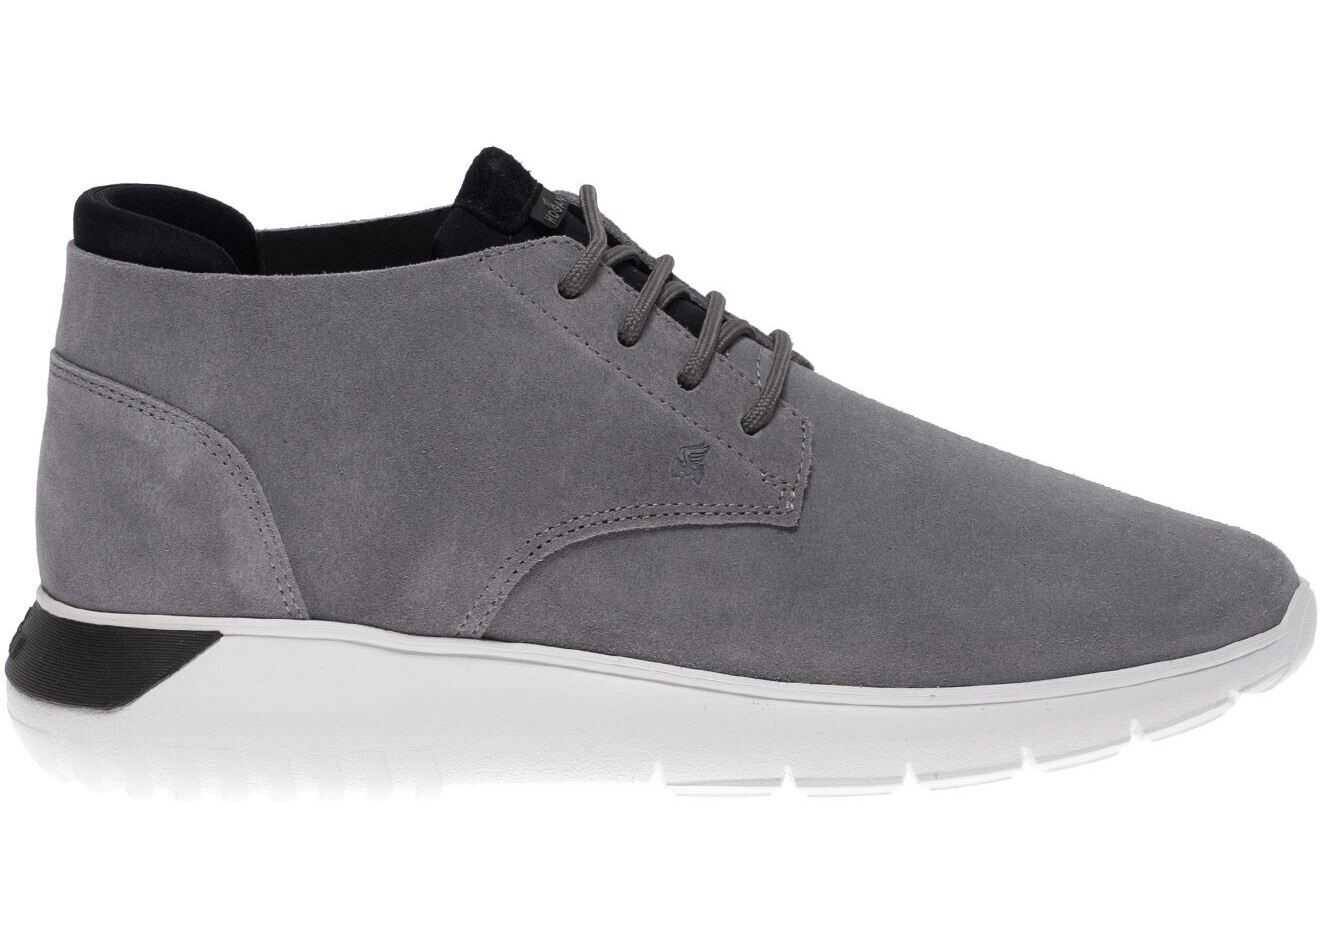 Hogan Interactive³ Sneakers In Grey And Black Grey